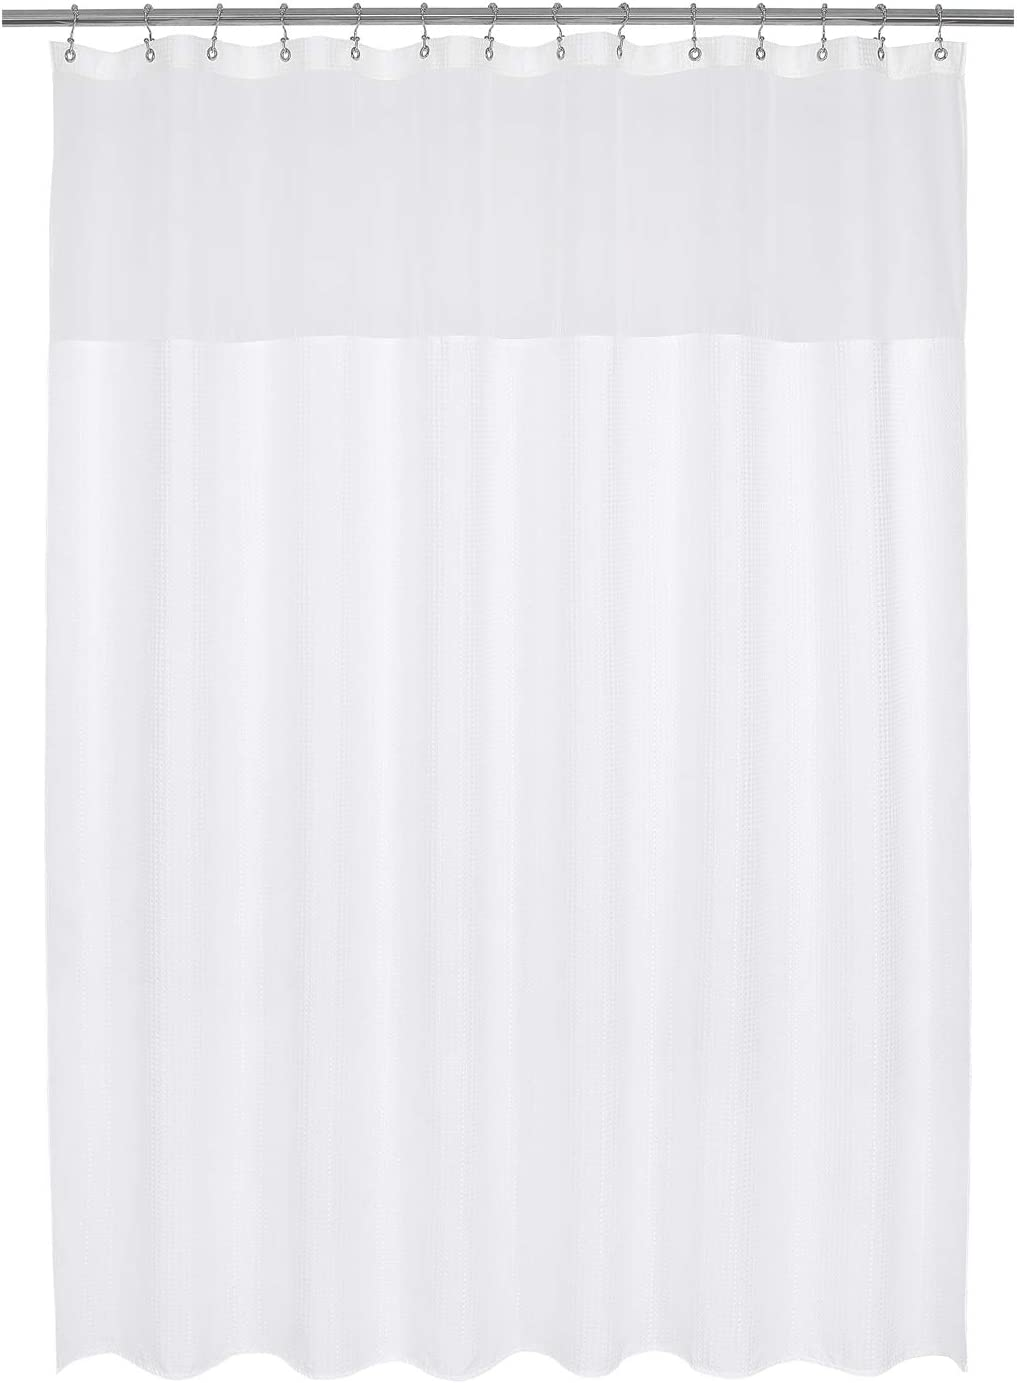 Barossa Design Extra Long and Wide Fabric Shower Curtain with Sheer Window 84 x 84 inch, Waffle Weave, Hotel Collection, 230GSM Heavyweight, Water Repellent, Machine Washable, White, 84x84 Large